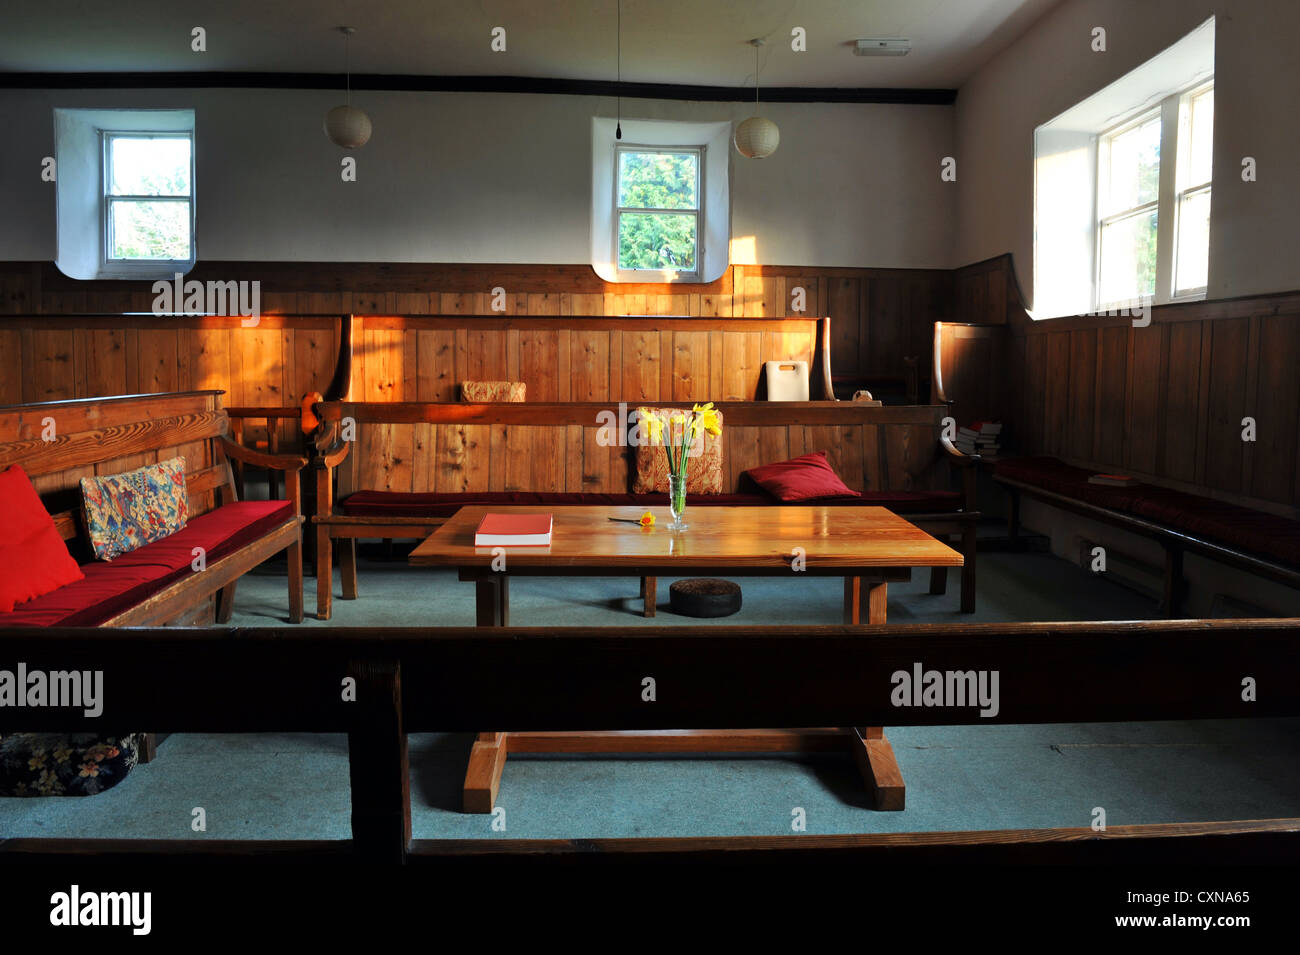 Quaker Meeting House, Rawden, Leeds UK Stockbild